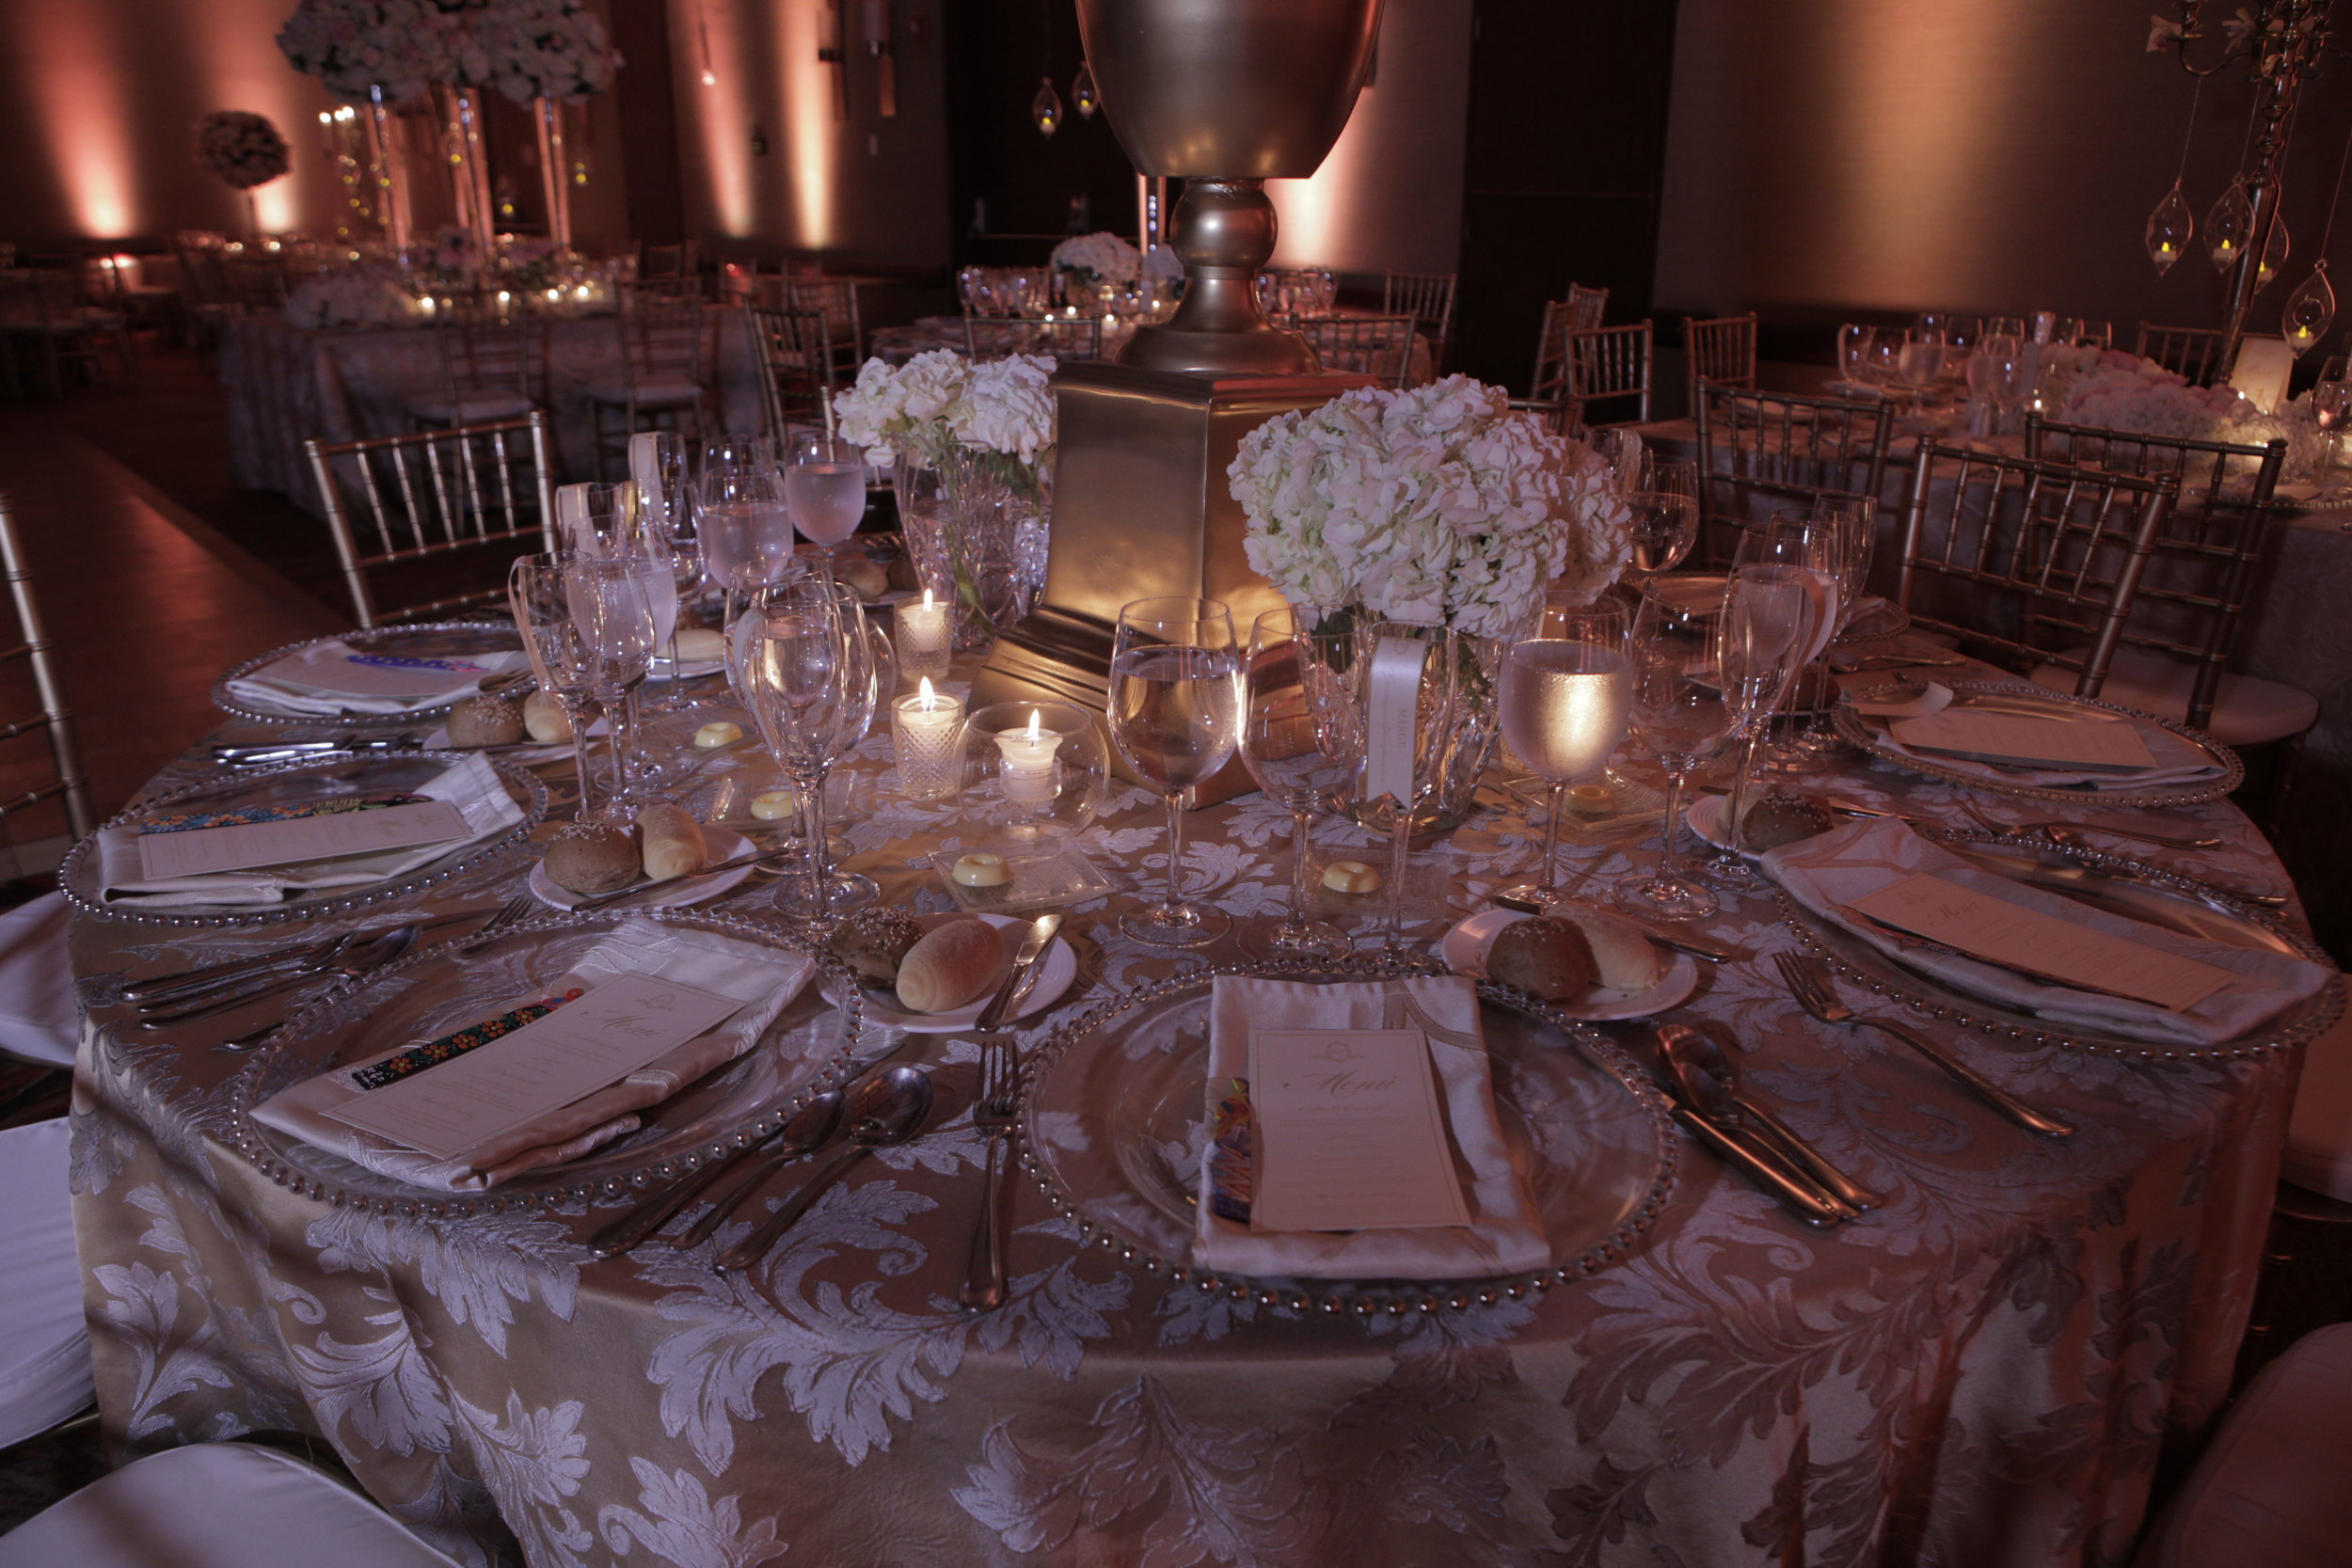 juliethbravo-wedding-planner-decoracion-davidvasquez-miami-colombia-rosas.JPG